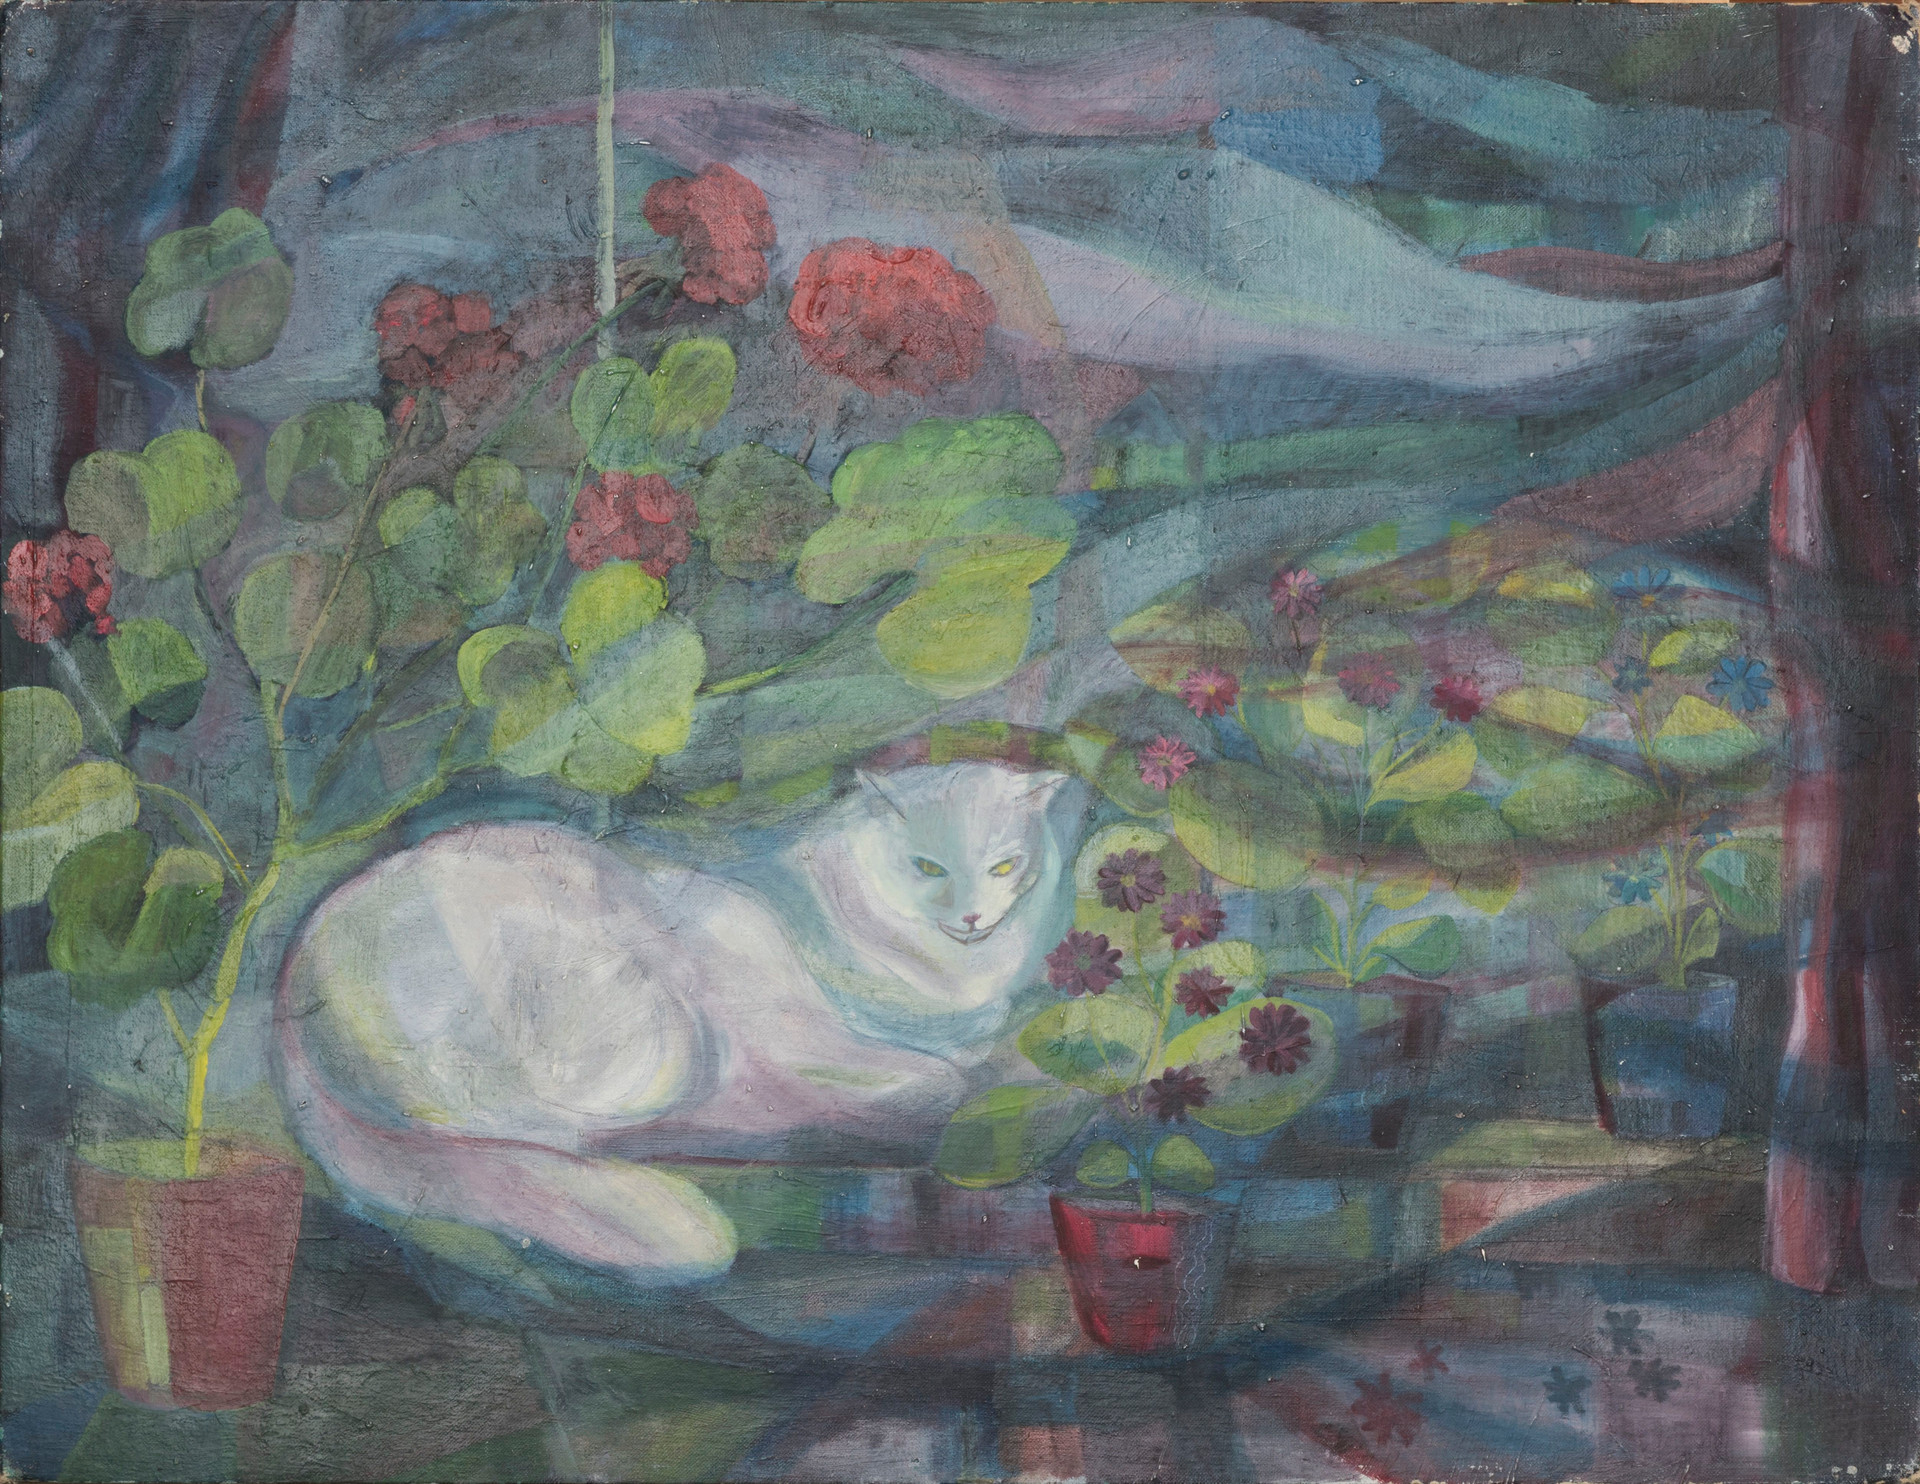 Untitled - white cat with red and purple flowers